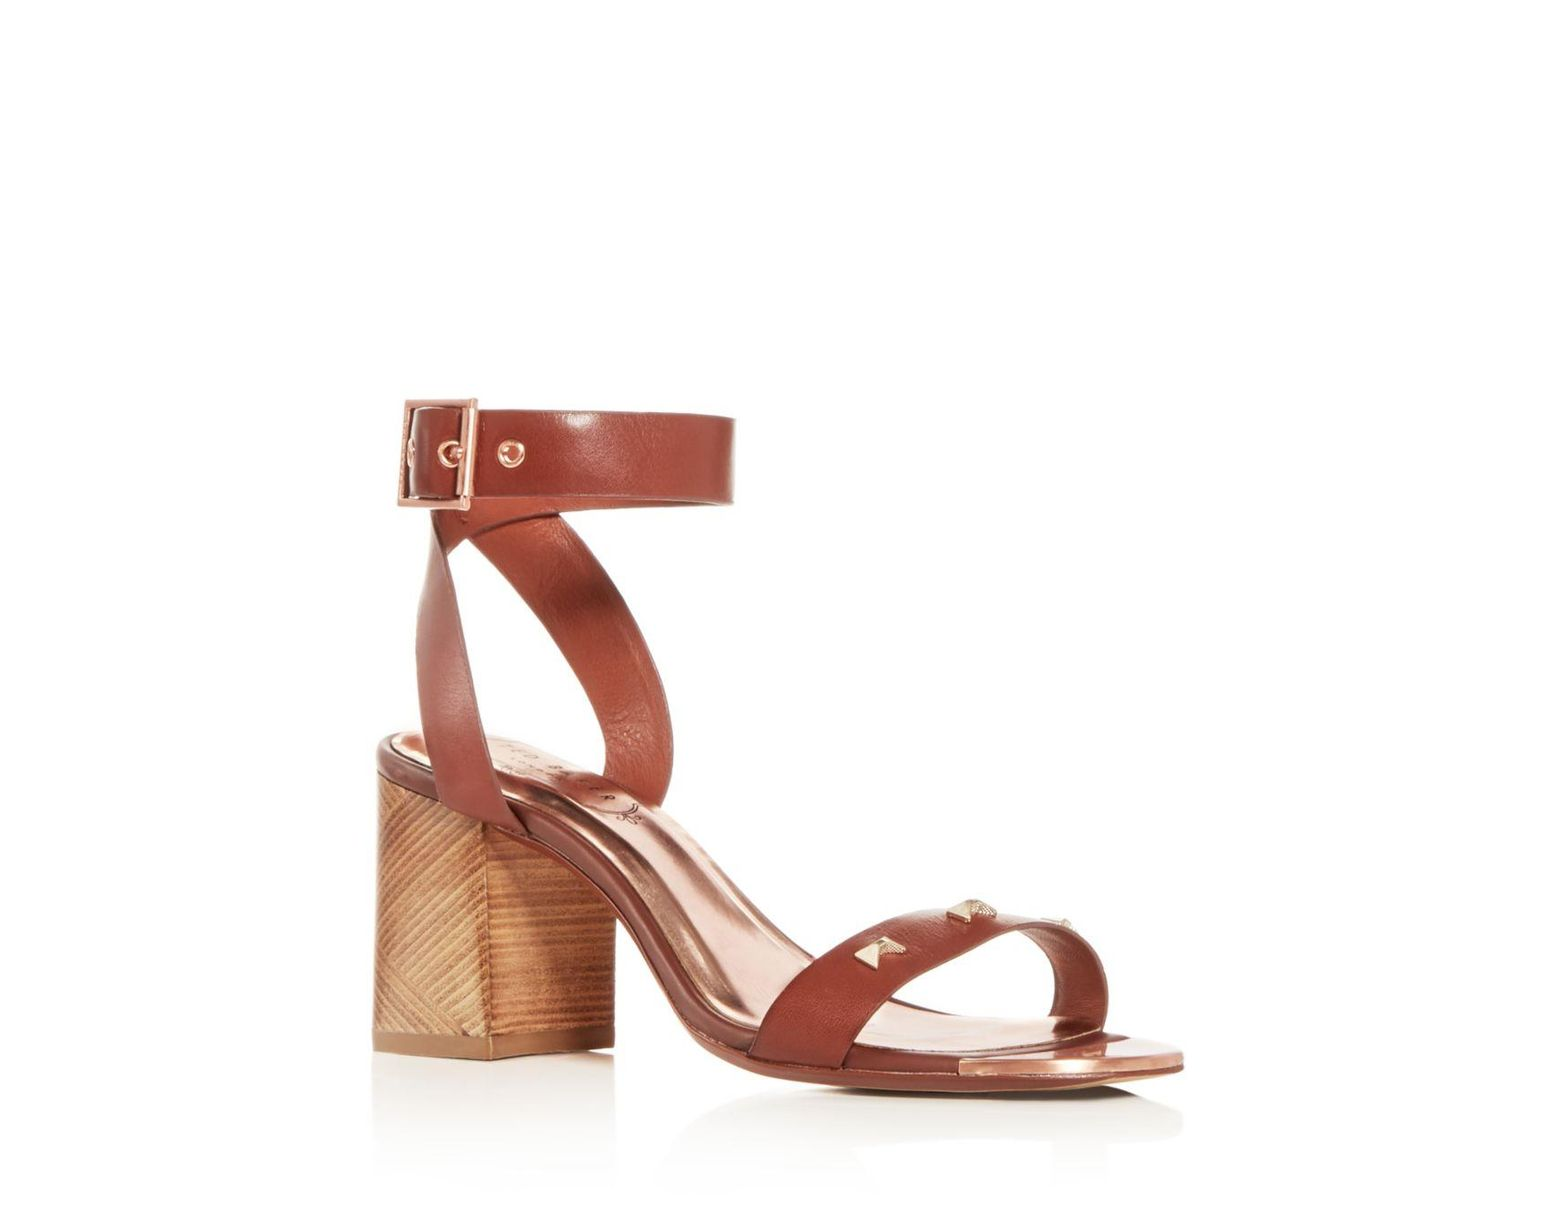 c69a23feefb1 Lyst - Ted Baker Women s Biah Studded Block-heel Sandals in Brown